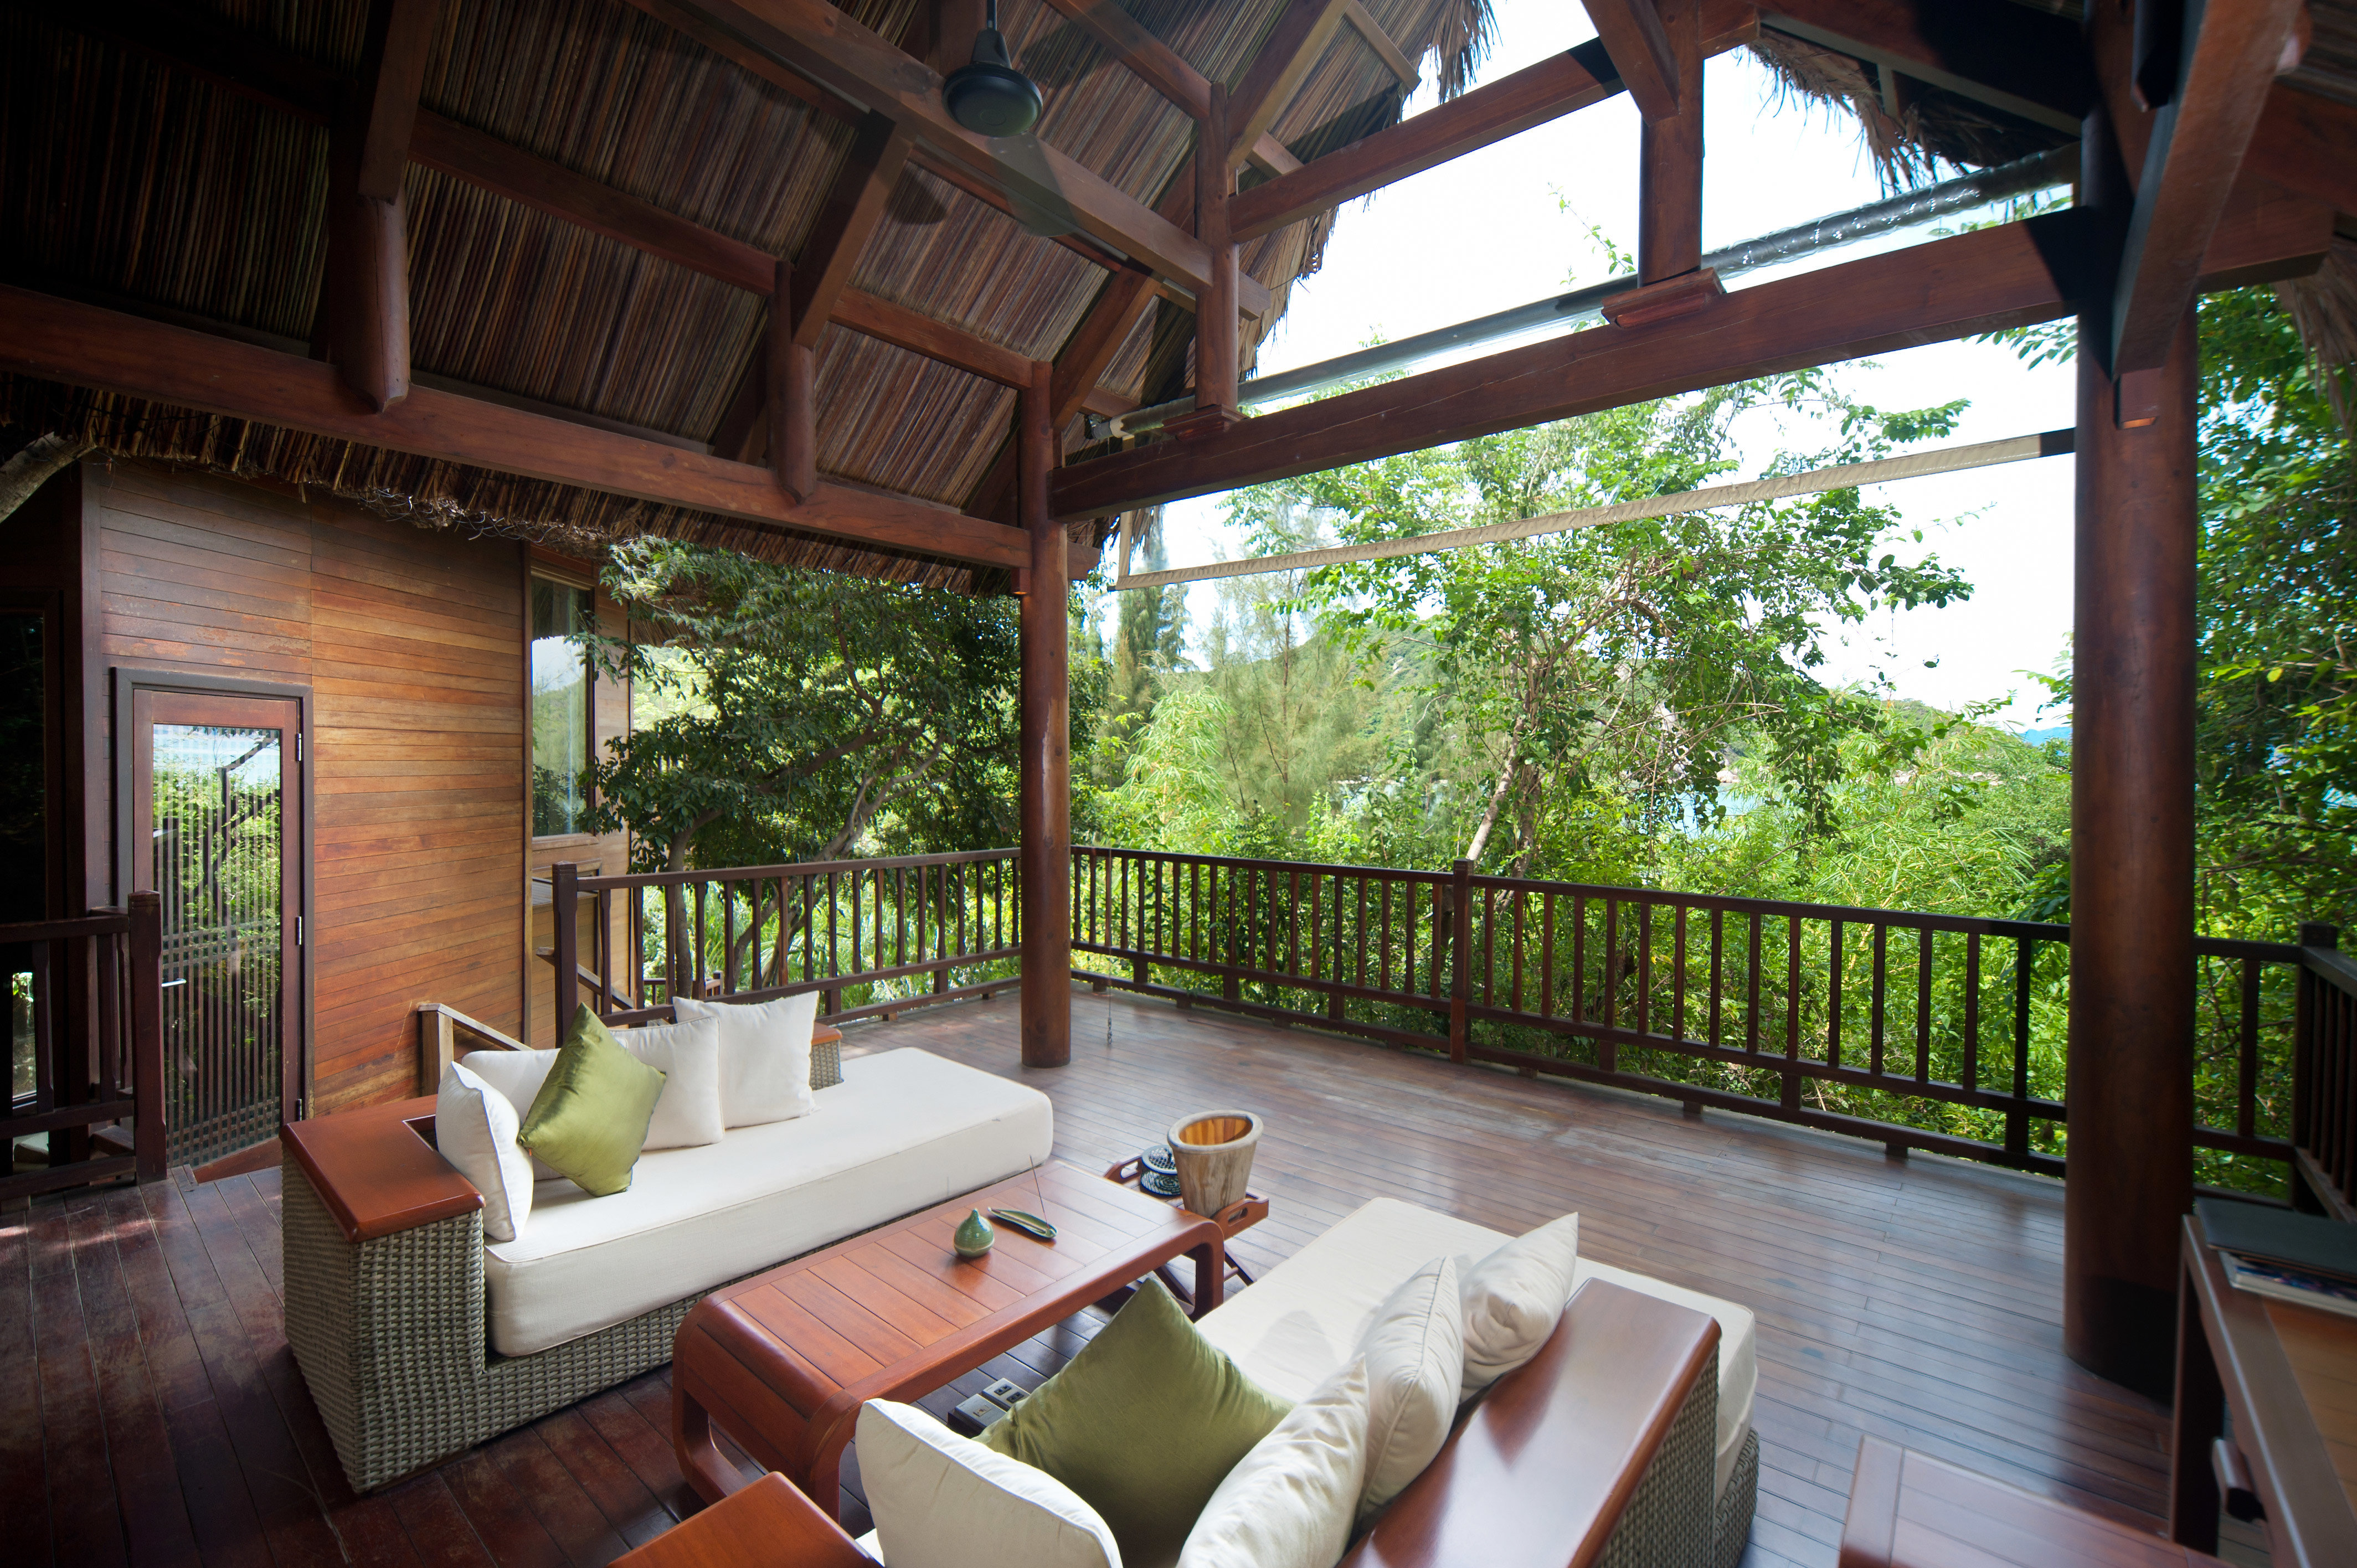 Balcony Country Eco Elegant Forest Jungle Lounge Luxury Mountains Nature Outdoor Activities Scenic views Tropical Villa Waterfront property Resort house porch home cottage outdoor structure backyard farmhouse hacienda